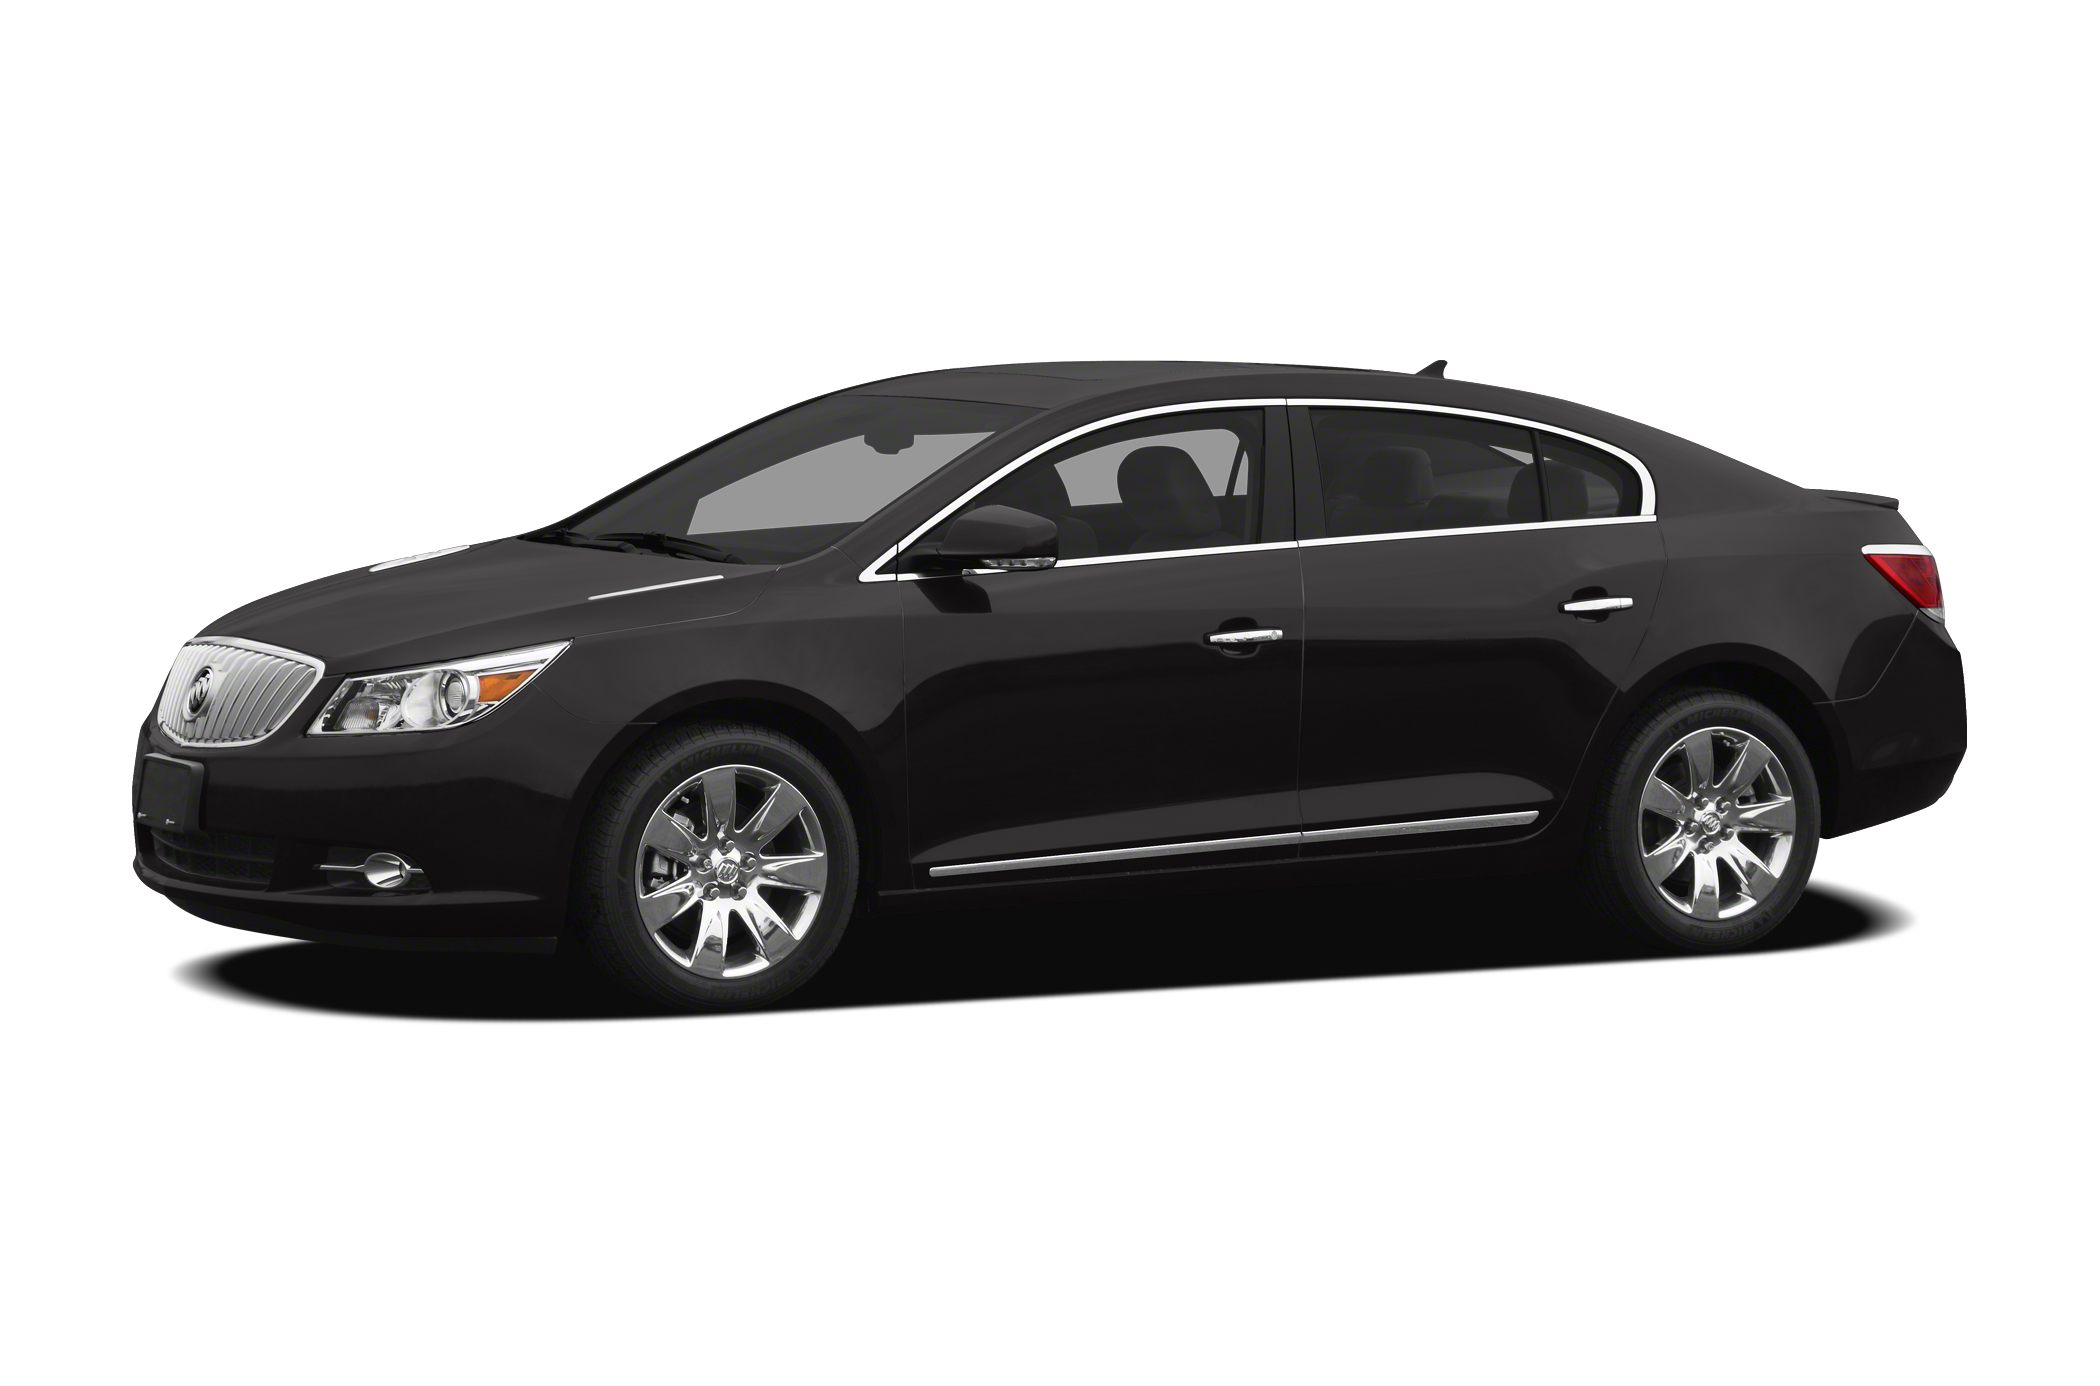 2013 Buick LaCrosse Leather Sedan for sale in Venice for $20,695 with 25,670 miles.